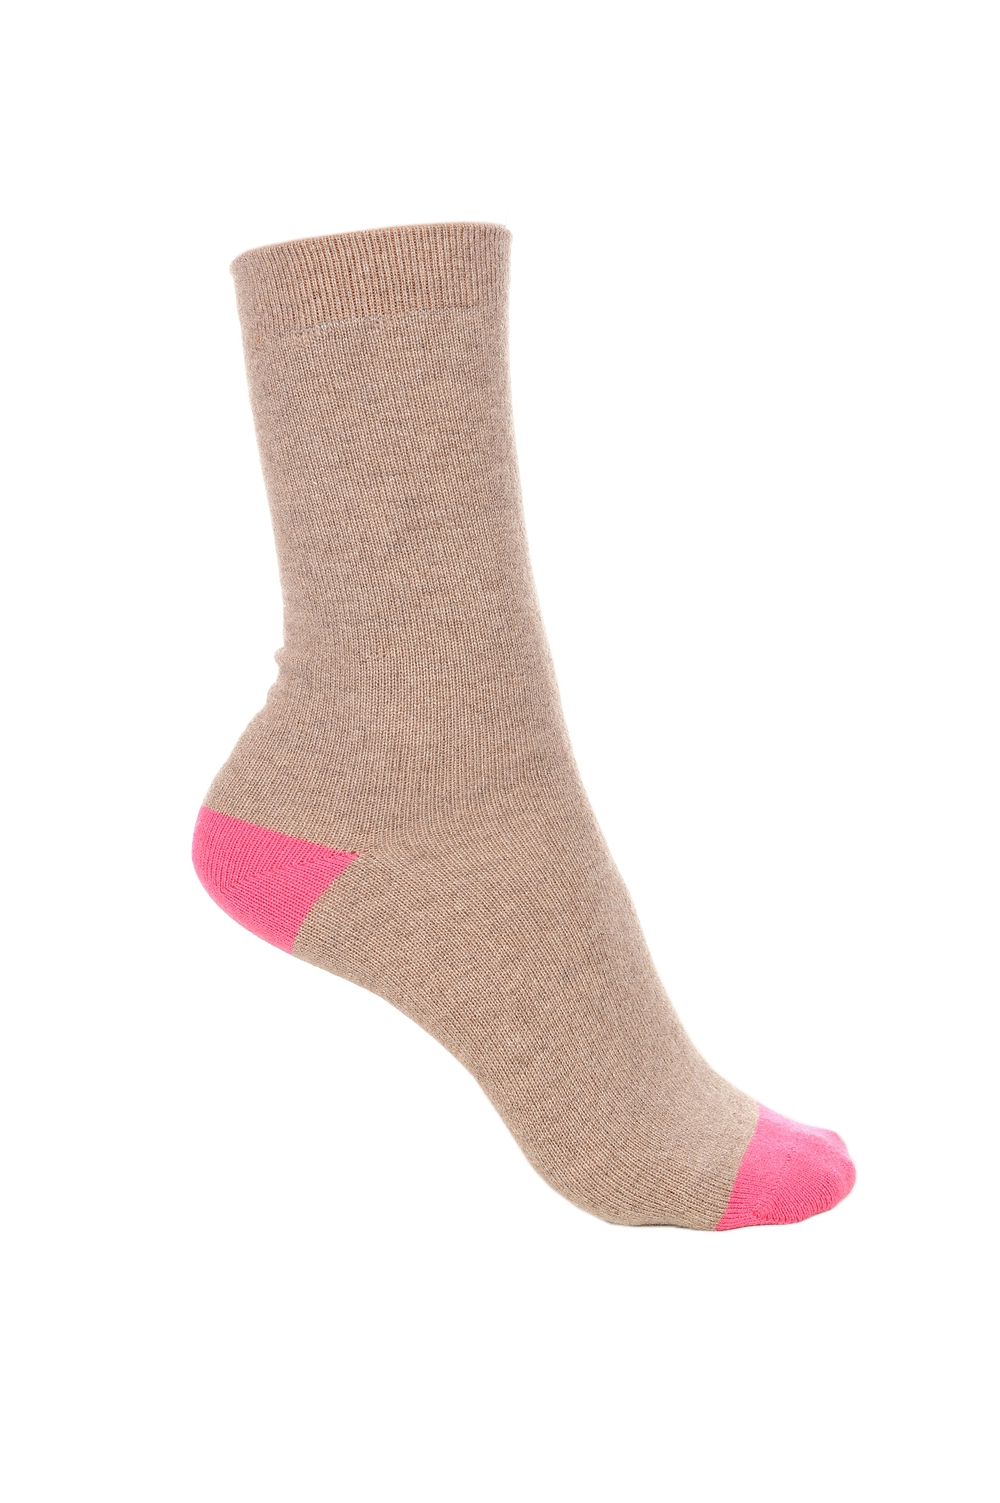 Cachemire & Elasthanne accessoires chaussettes frontibus natural brown chine rose shocking 39 42